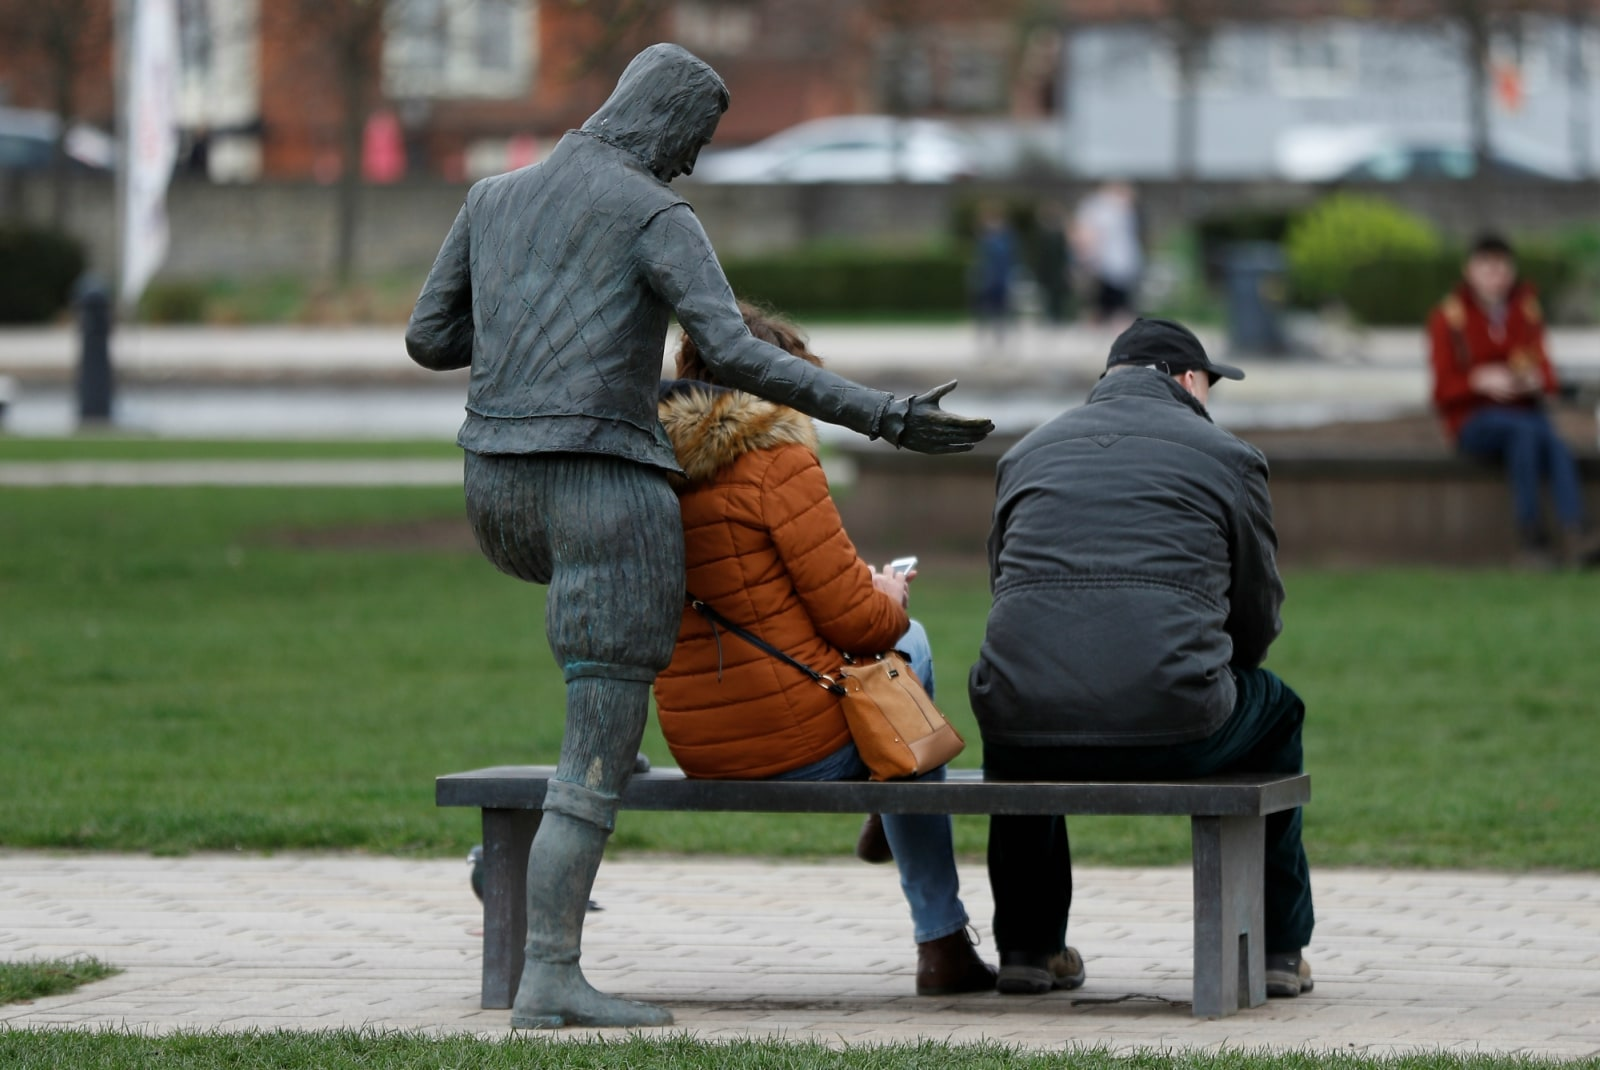 Visitors sit on a bench attached to a statue of writer William Shakespeare in the centre of Stratford-upon-Avon, Britain, March 22, 2019. REUTERS/Peter Nicholls/Files